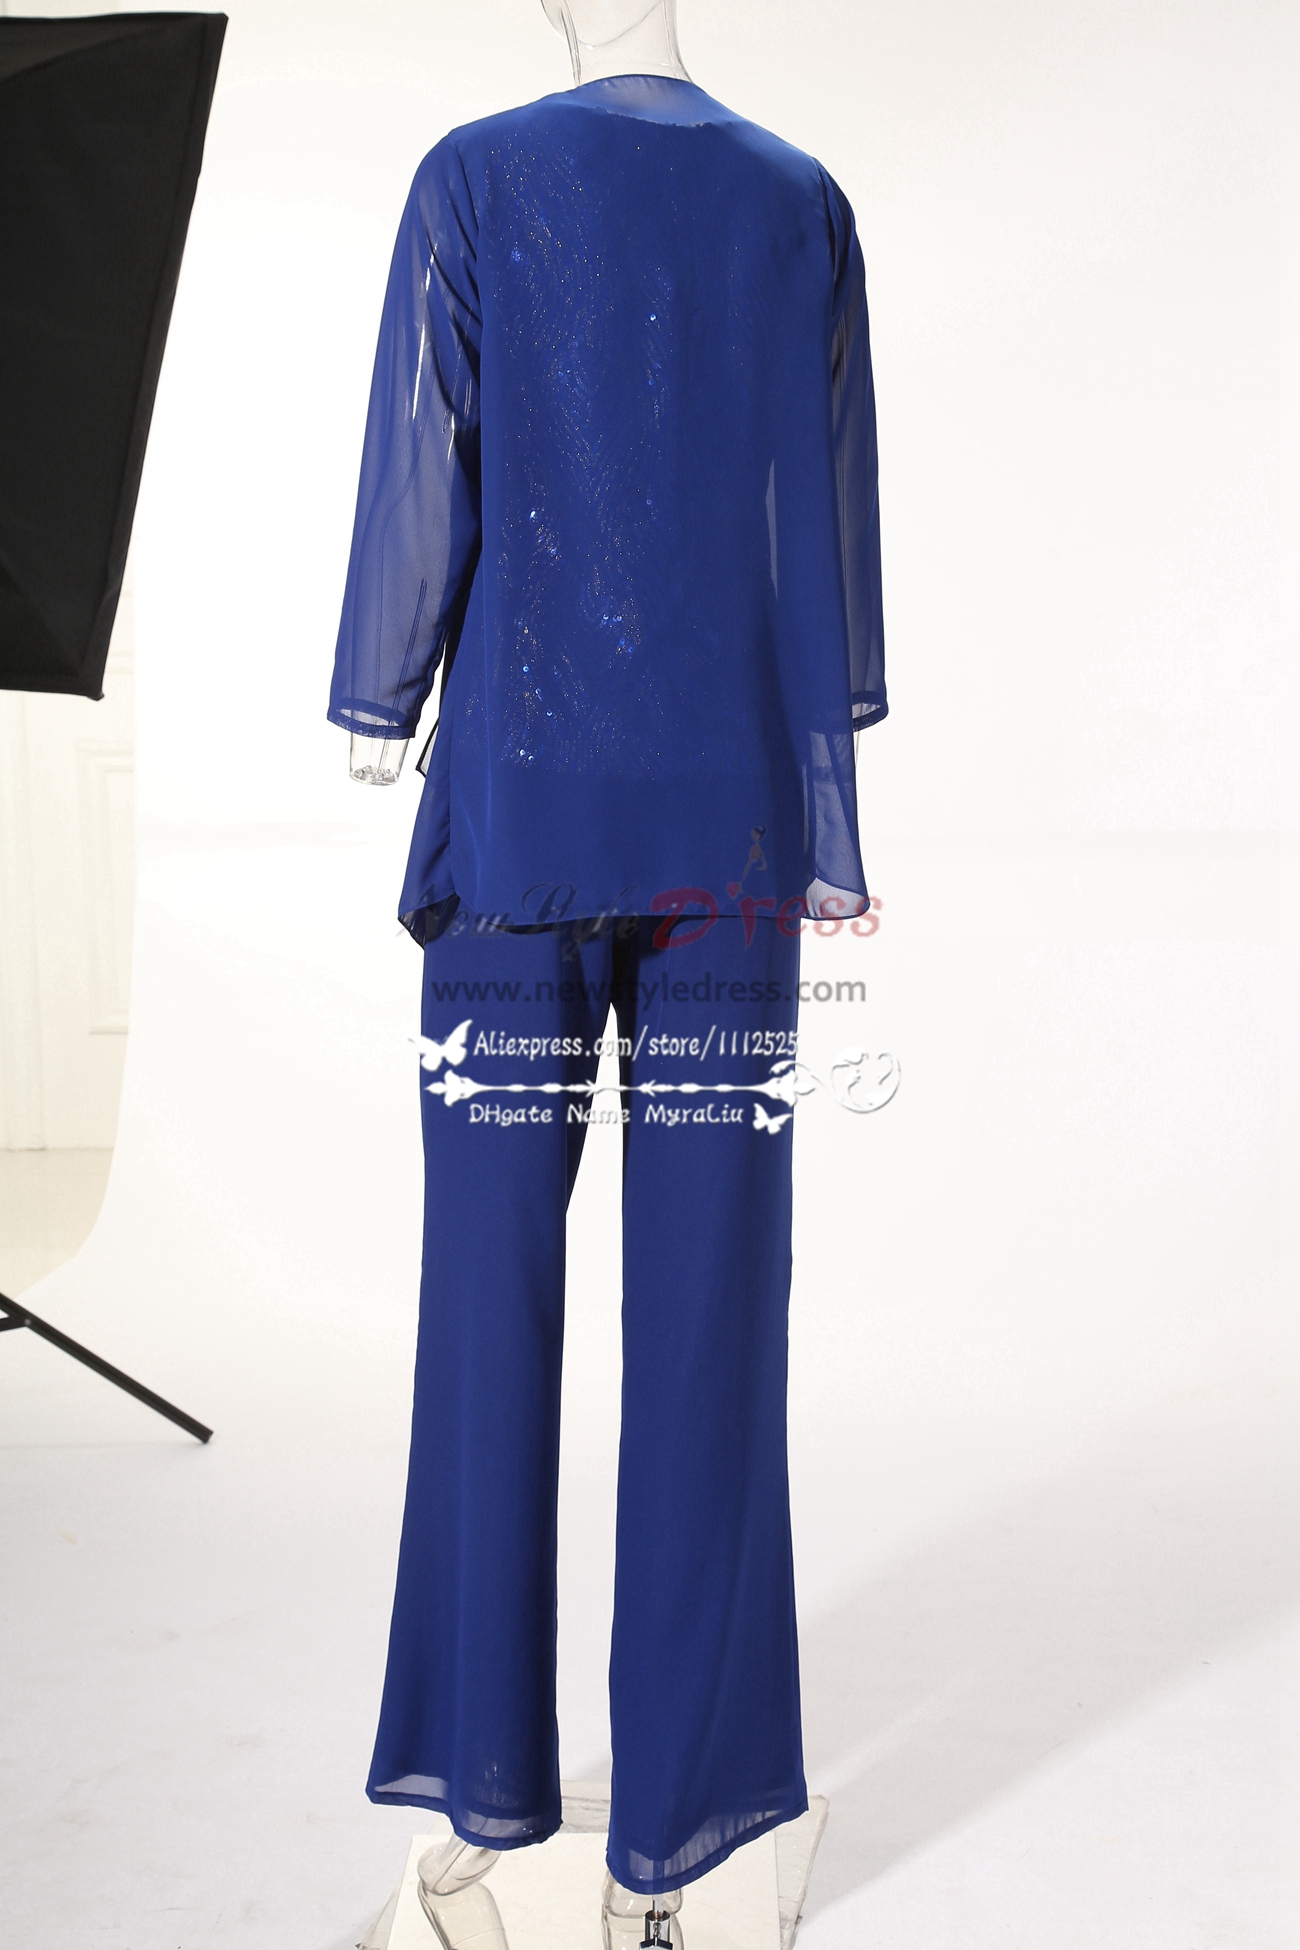 2018 new arrival chiffon mother of the bride pant suits